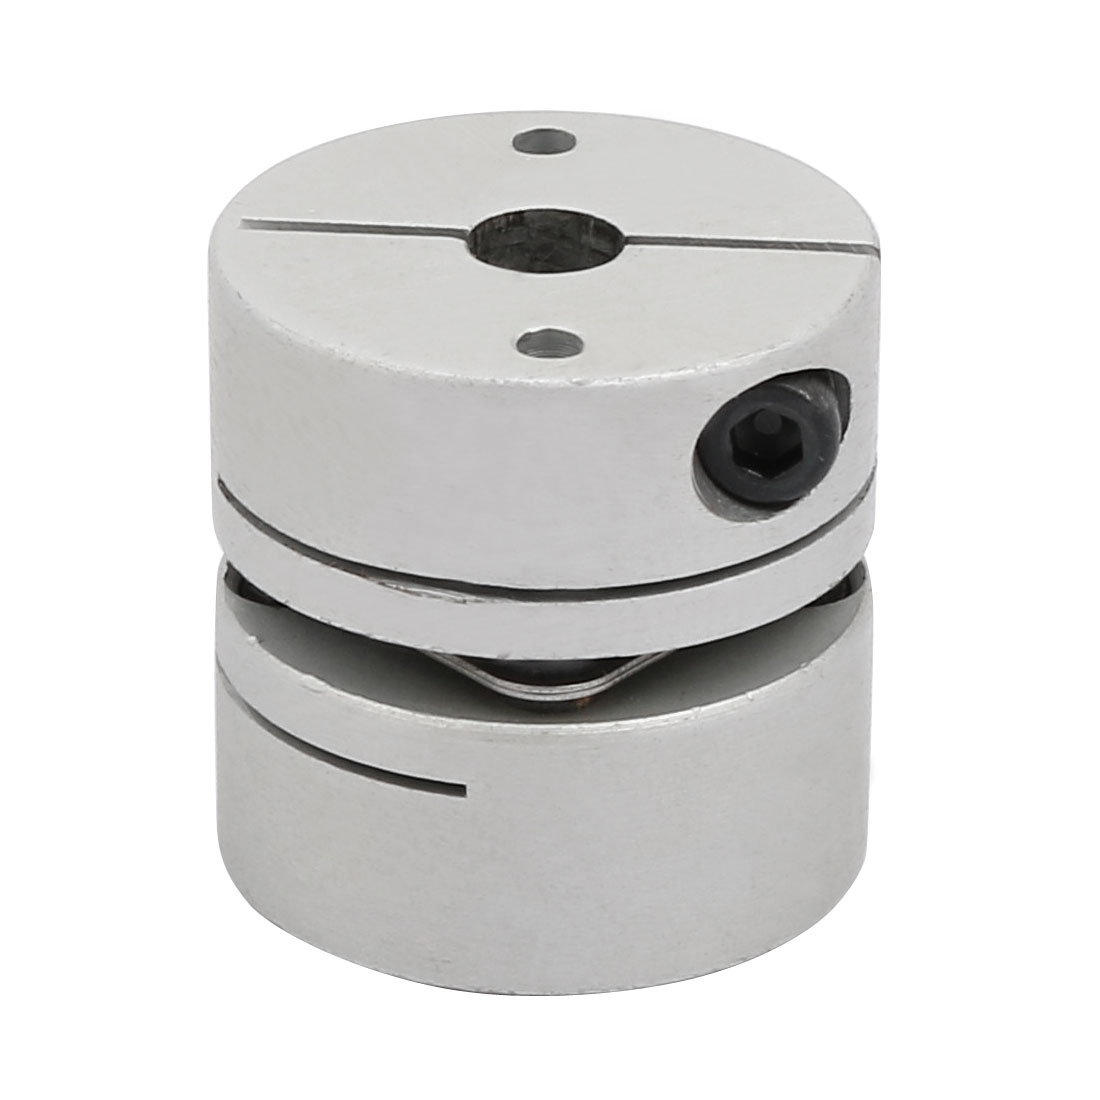 6.0mm to 8mm Aluminium Alloy Encode Beam Coupling Joint DIY Motor Shaft Adapter - image 2 of 2